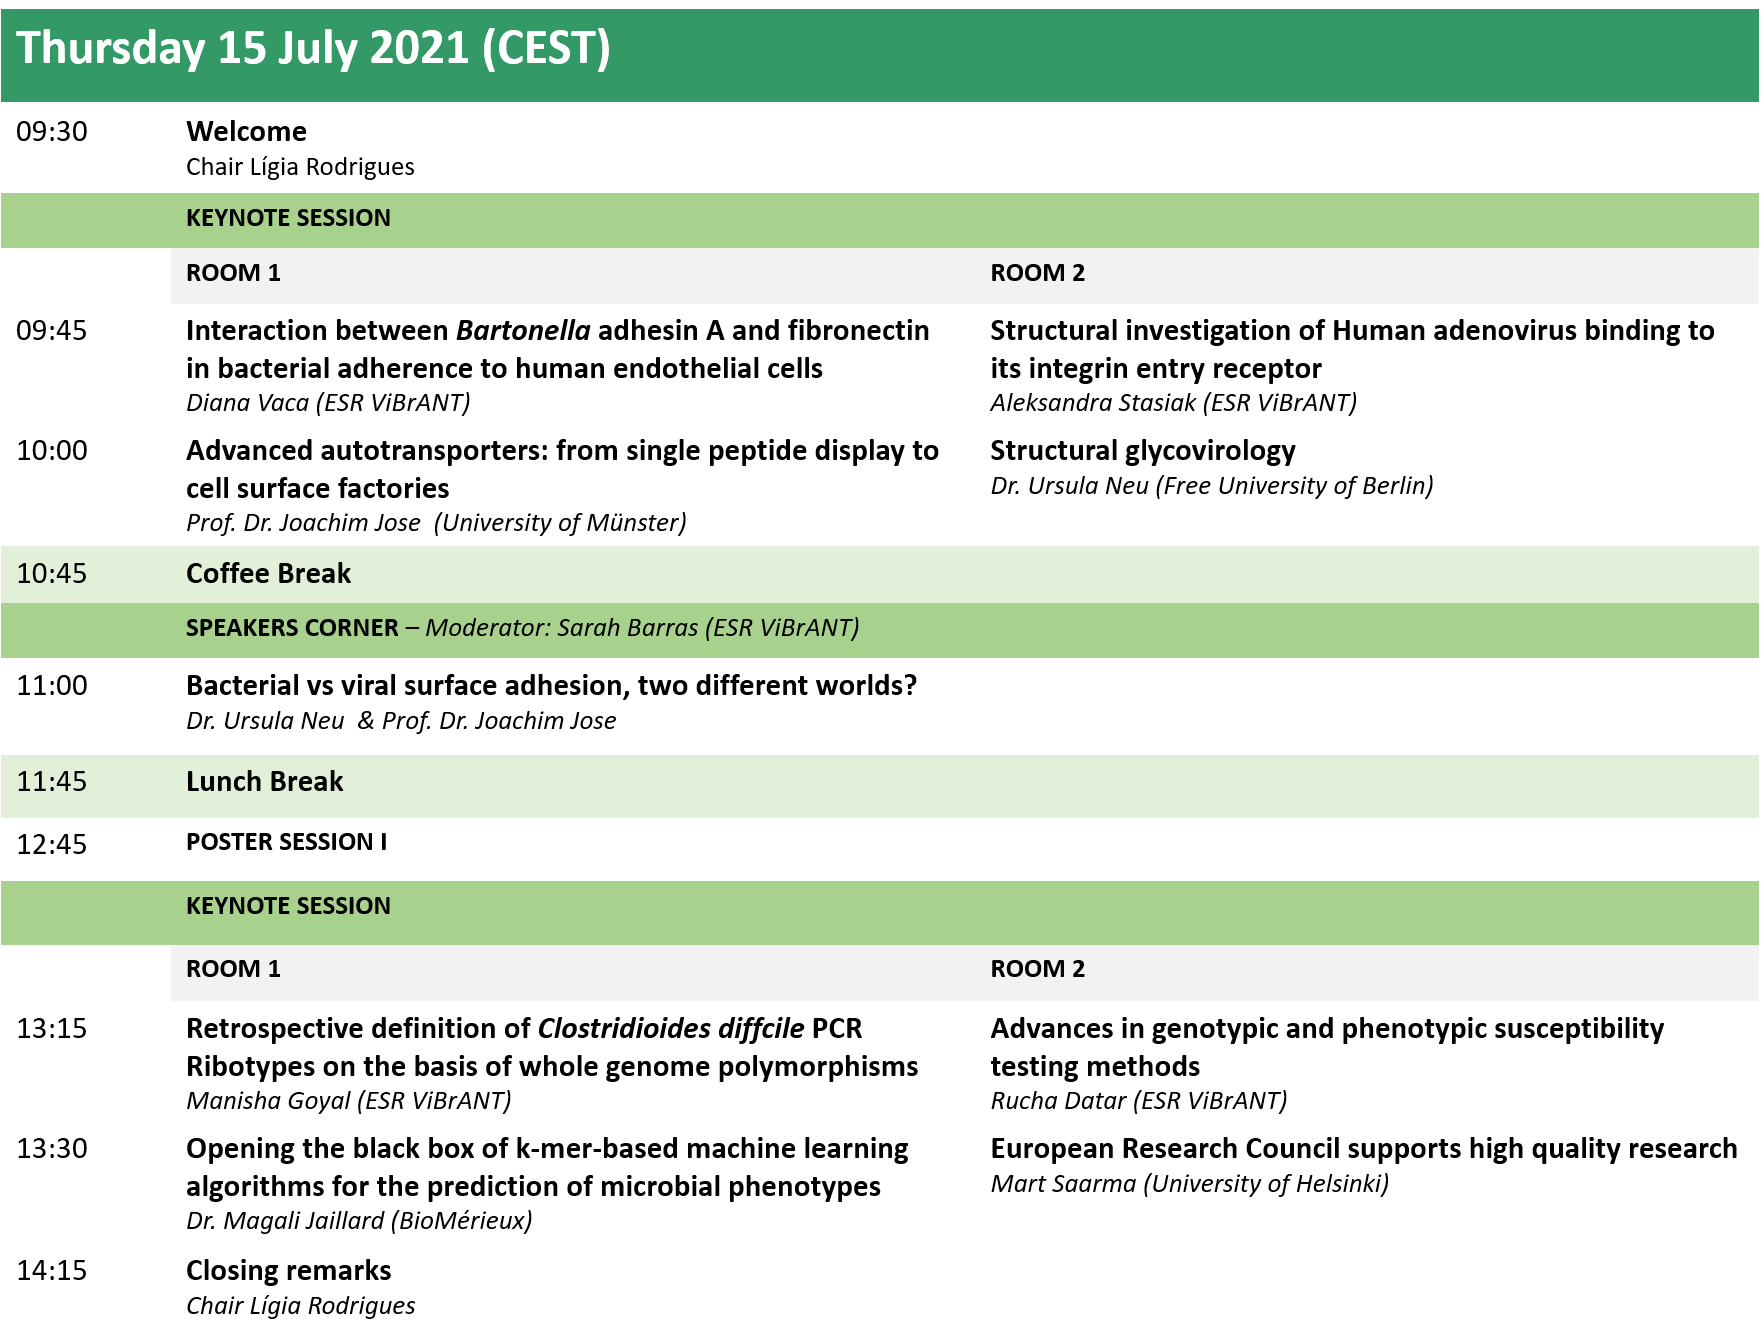 Official ViBrANT2021 Conference Programme 15 July